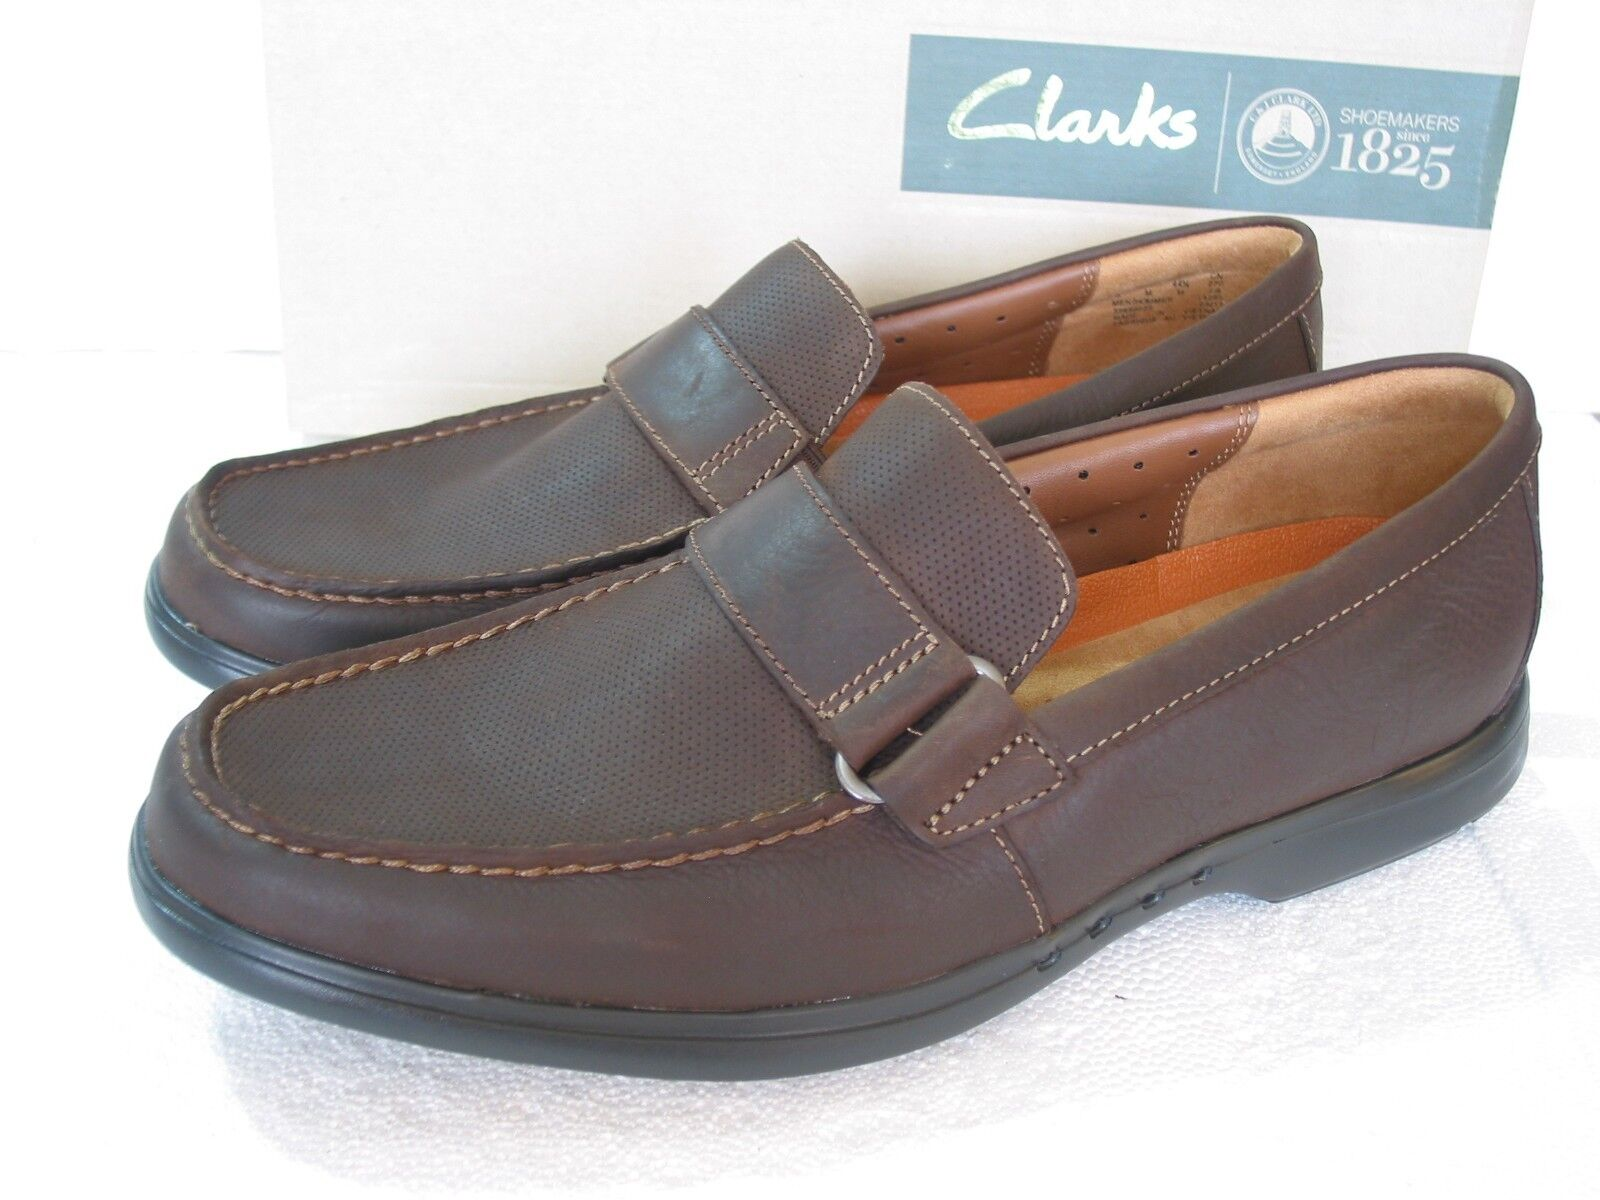 NEW CLARKS UN STRUCTURED UN EASLEY BROWN LEATHER SHOES VARIOUS SIZES